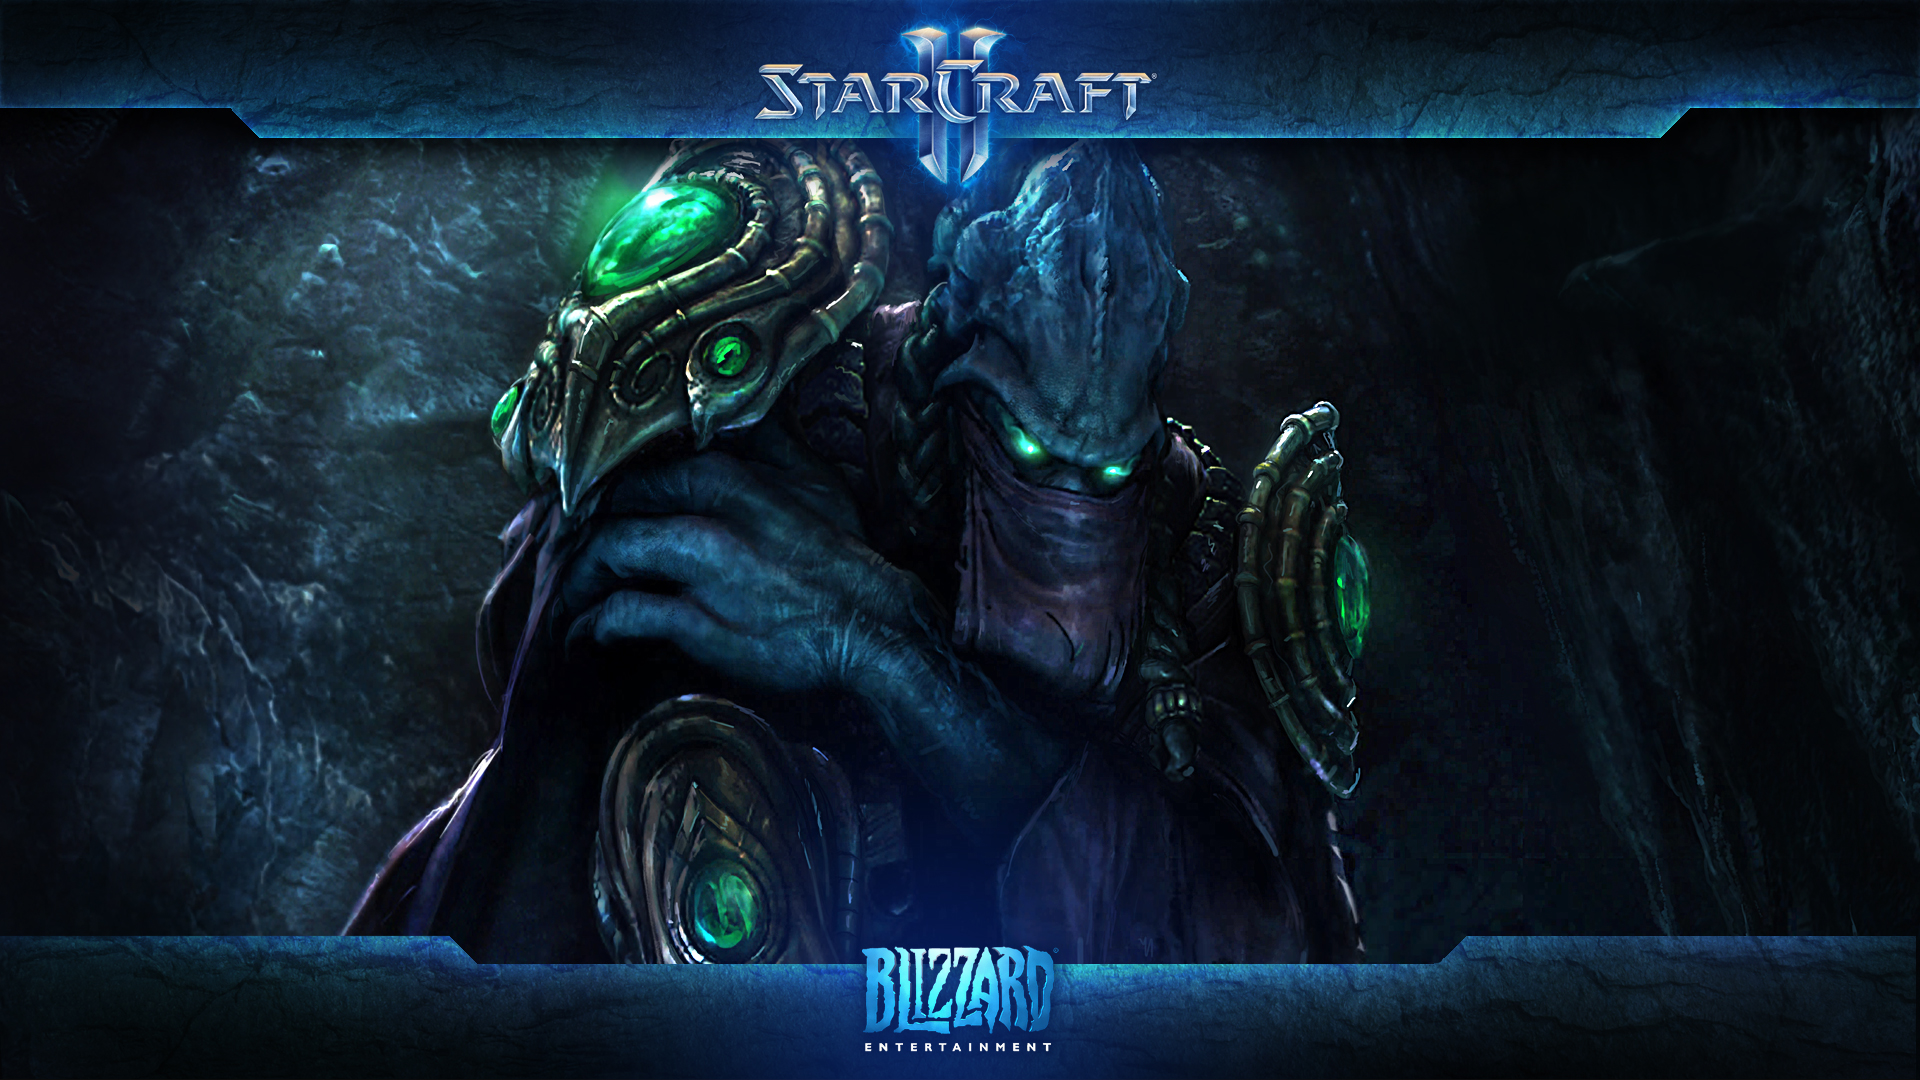 Starcraft 2 Wallpaper 1920X1080